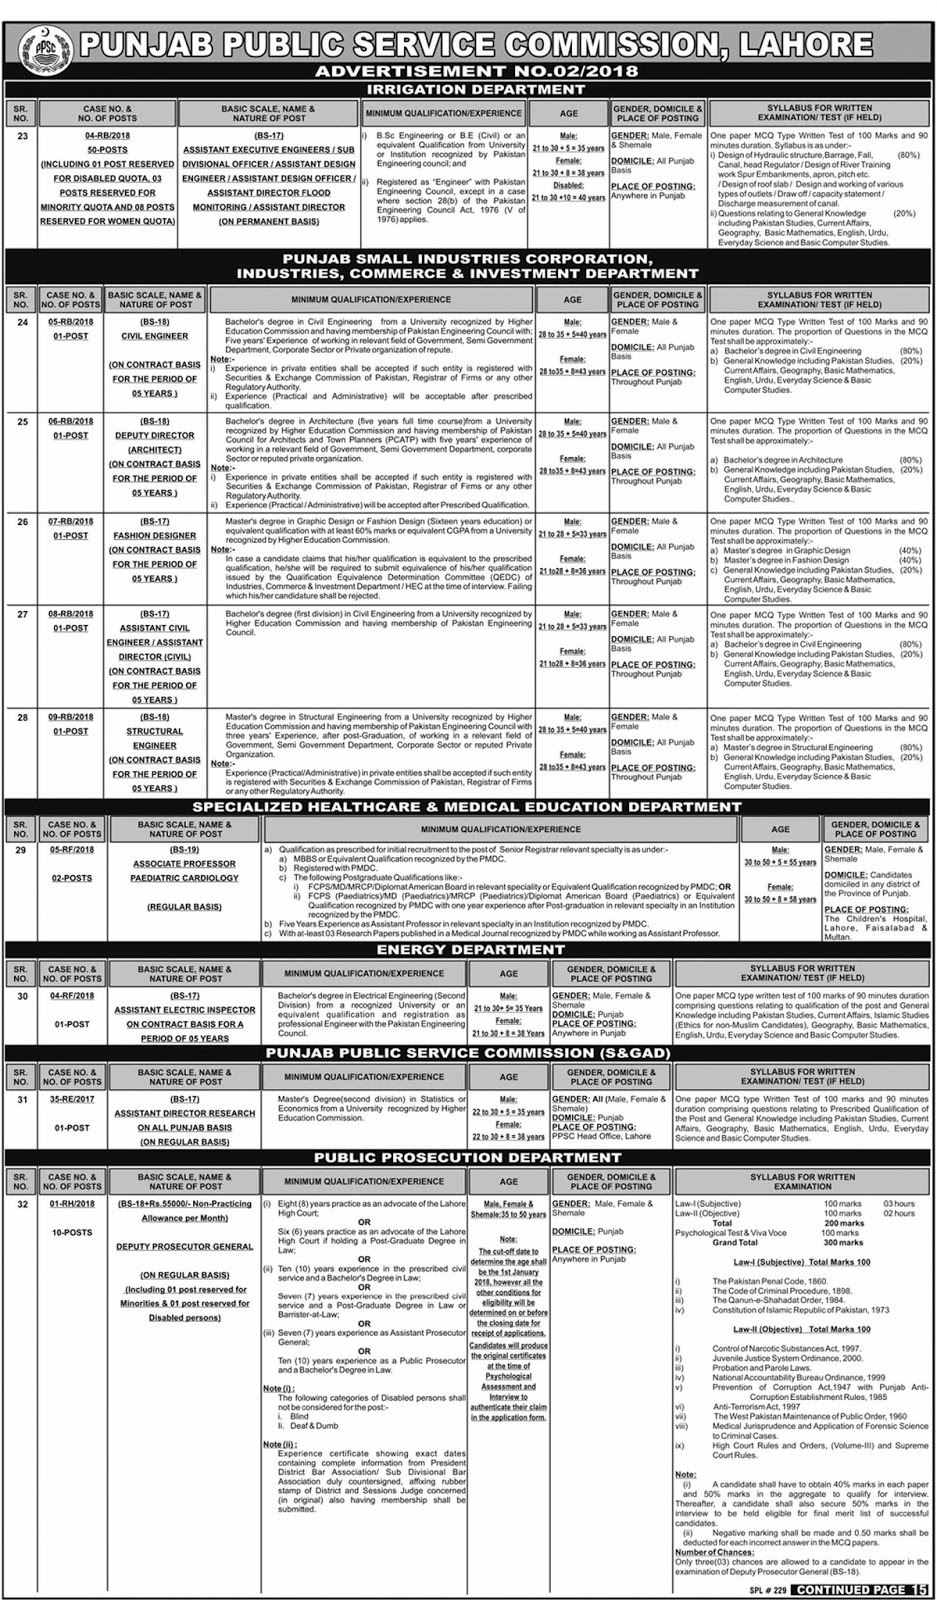 Latest PPSC Jobs Advertisement No. 02/2018